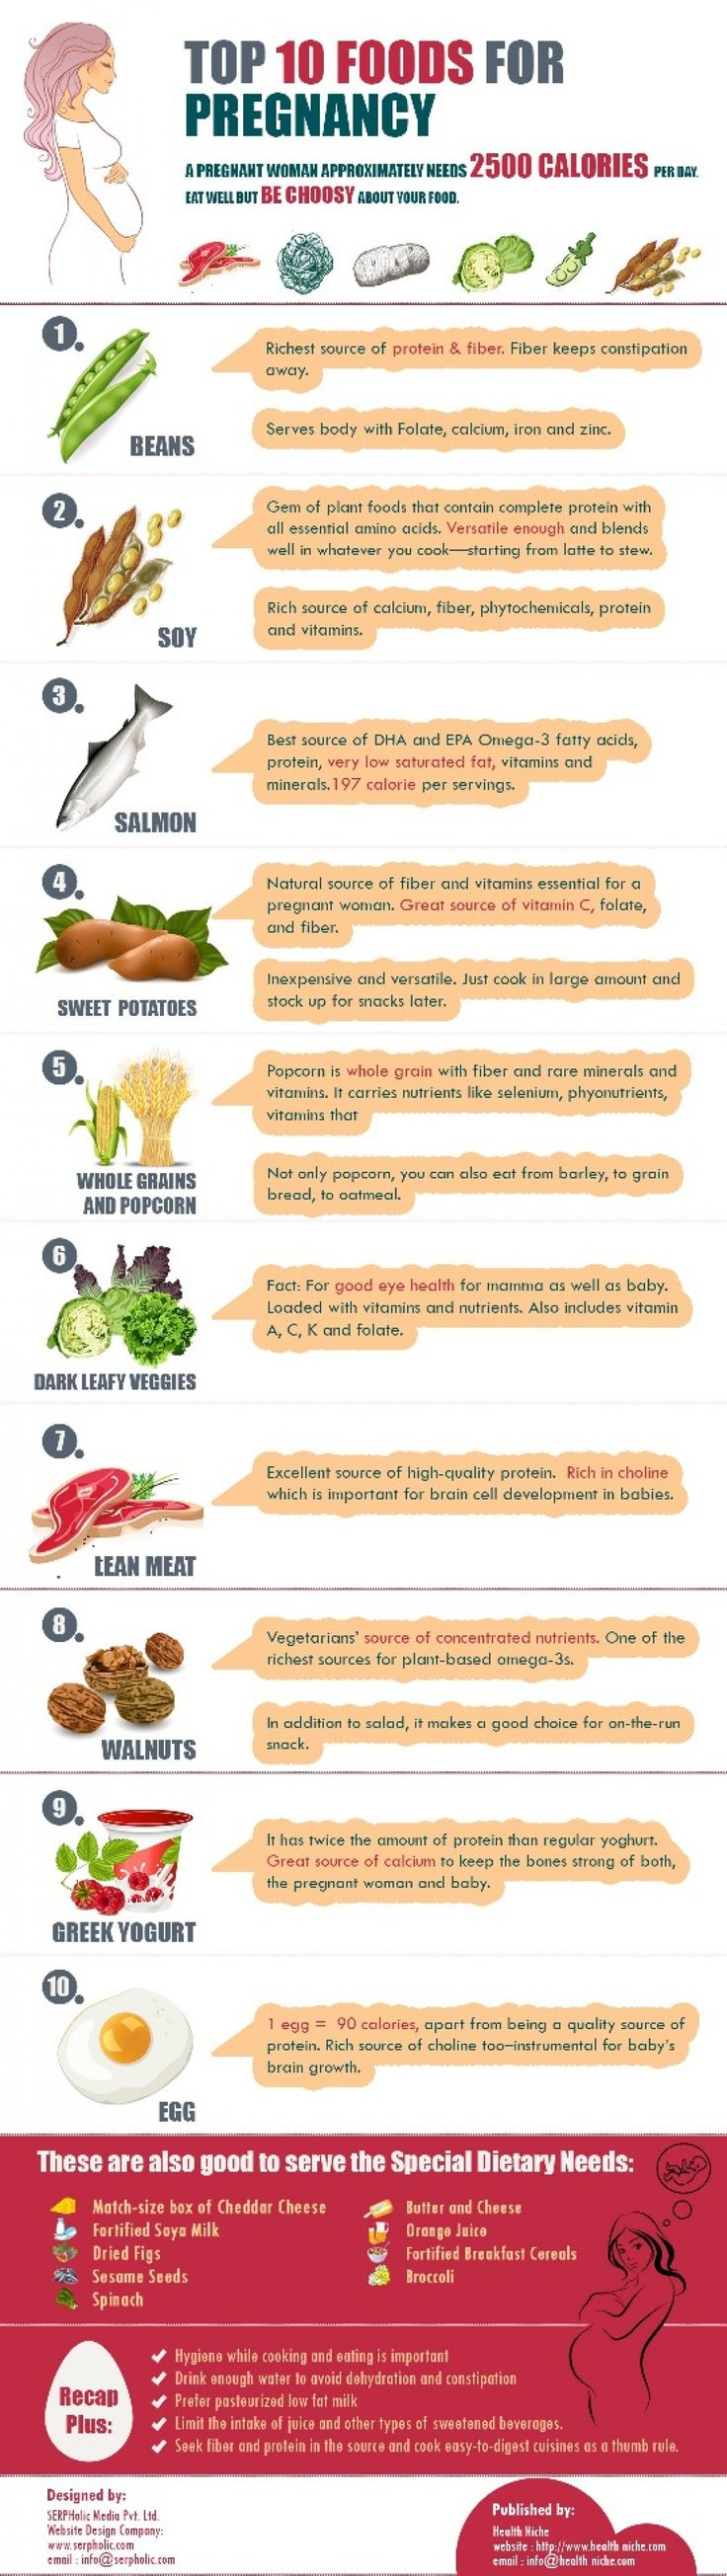 Top 10 foods for pregnancy infographic all i know is i for Healthiest fish list